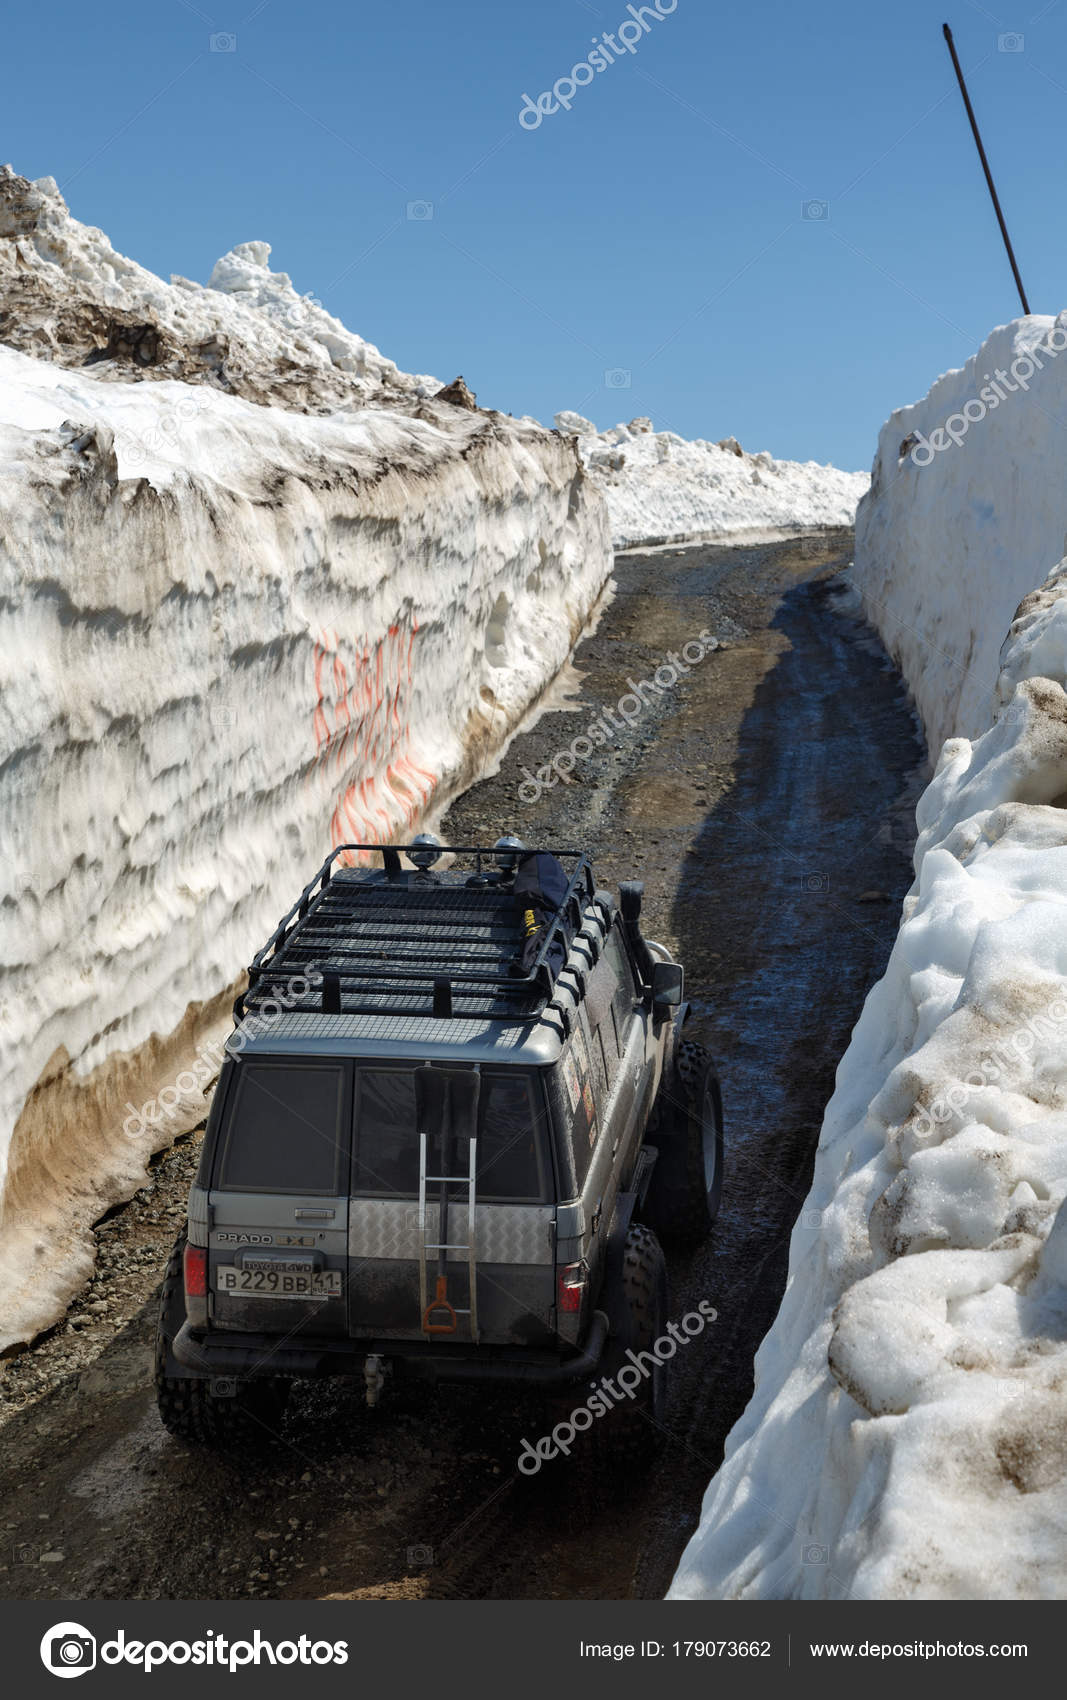 Off Road Cars Toyota Land Cruiser Prado Driving On Mountain In Snow Tunnel Surrounded